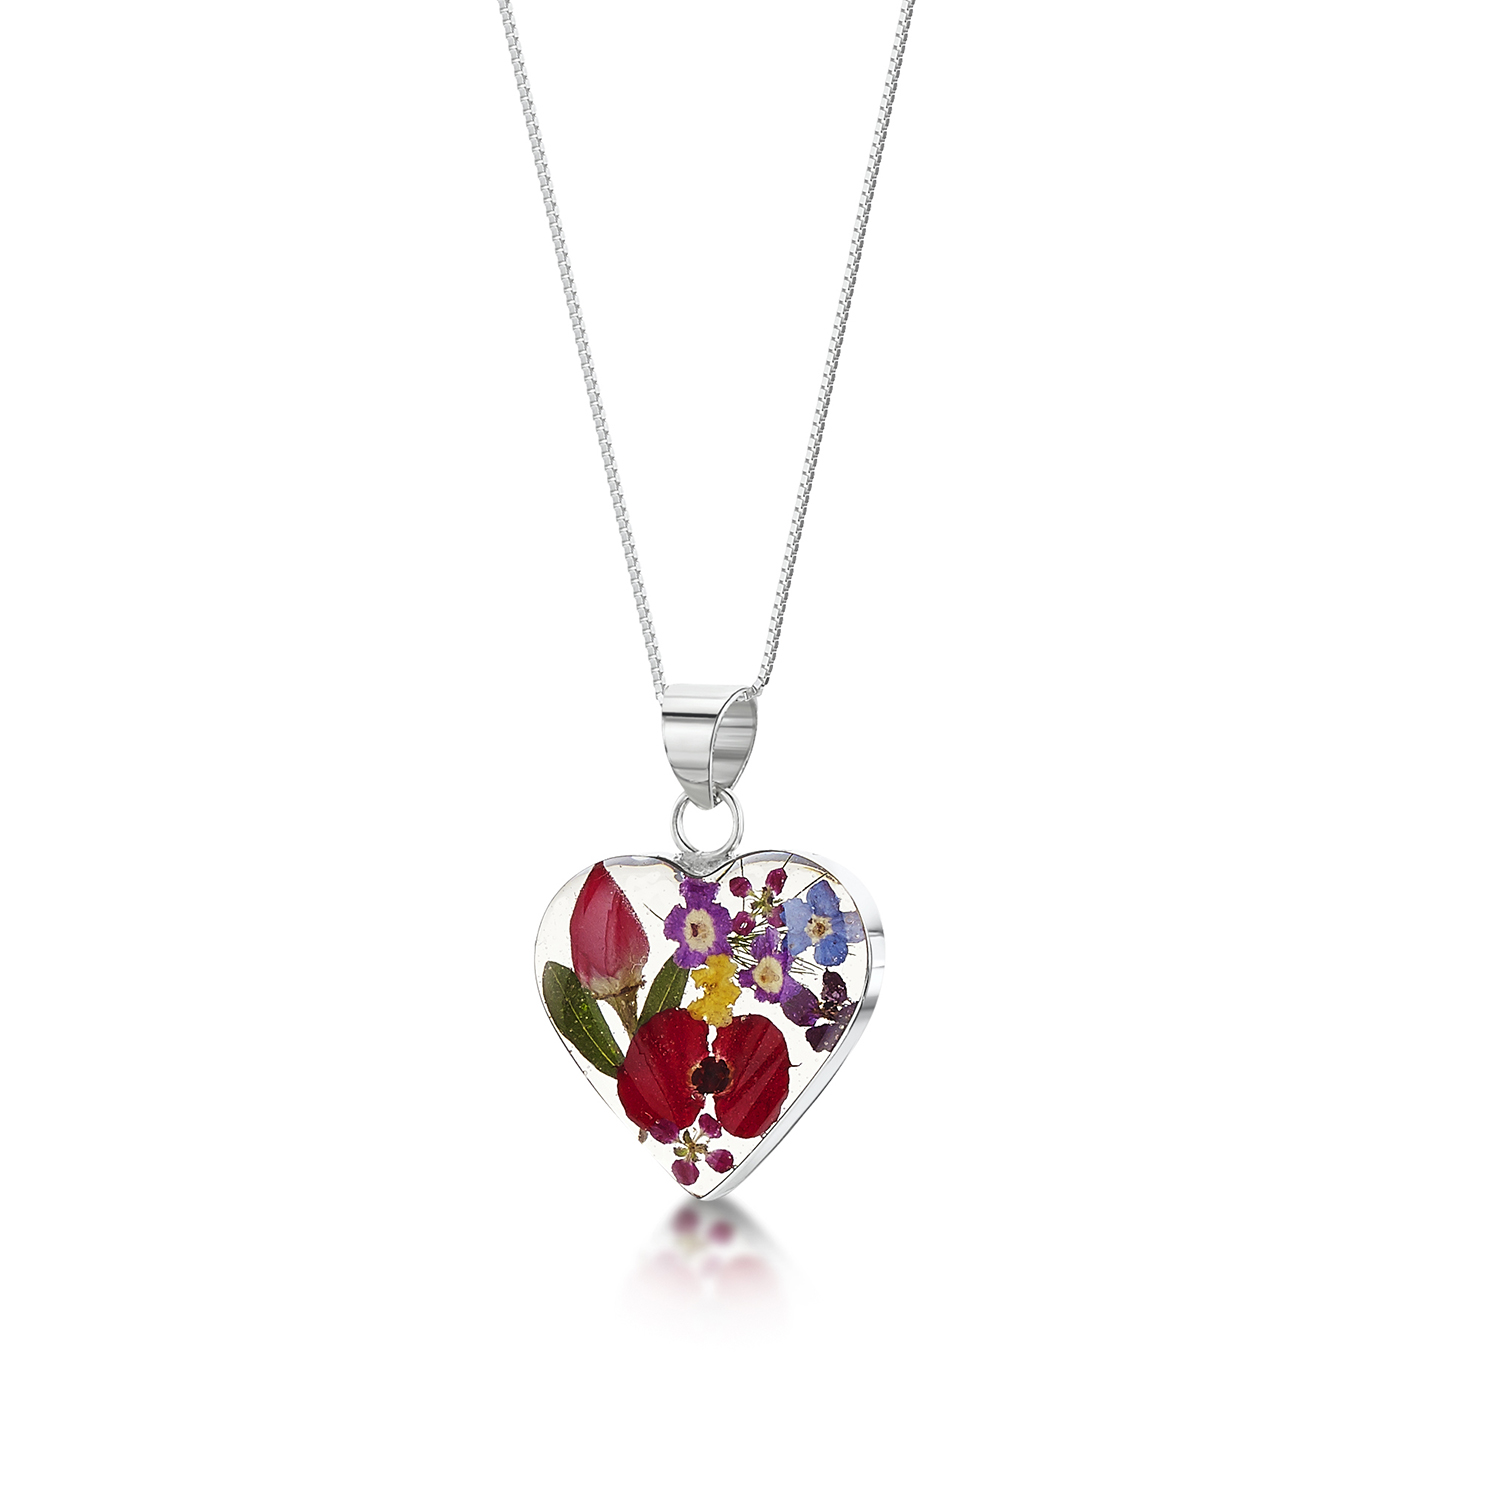 Shrieking Violet – Mixed Flowers Silver Medium Heart Pendant Necklace in Box